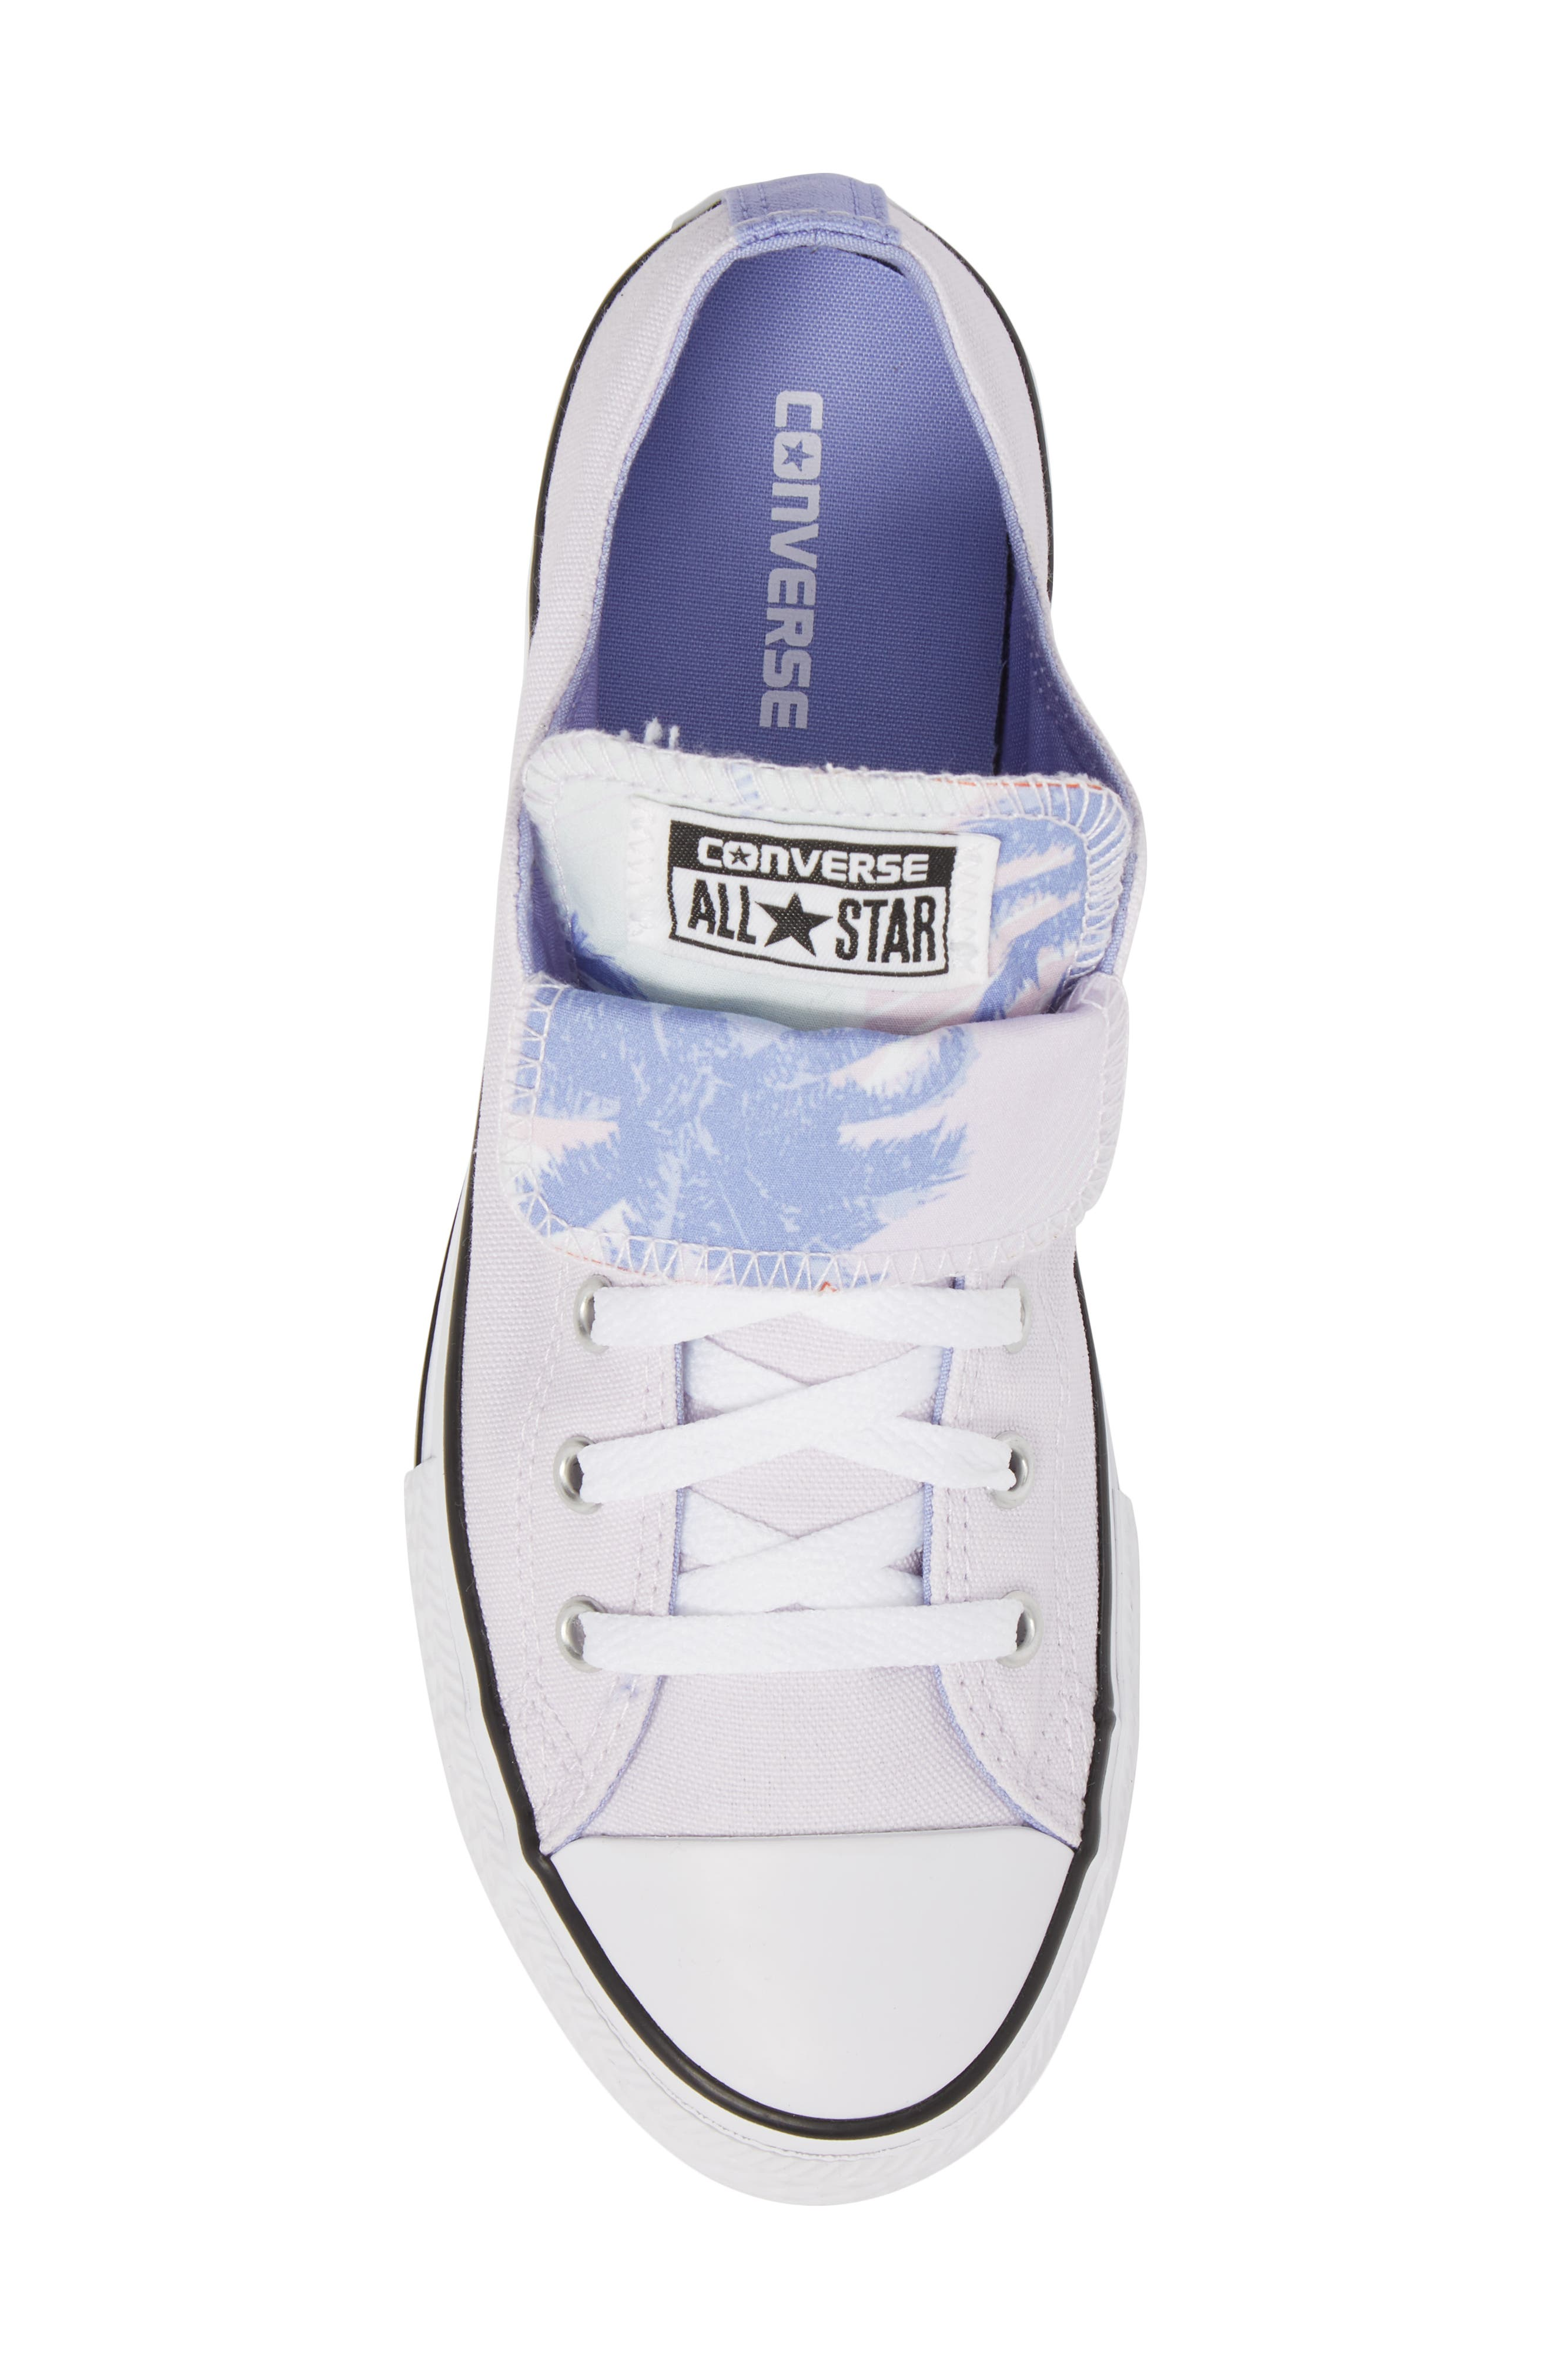 Chuck Taylor<sup>®</sup> All Star<sup>®</sup> Palm Tree Double Tongue Low Top Sneaker,                             Alternate thumbnail 5, color,                             551